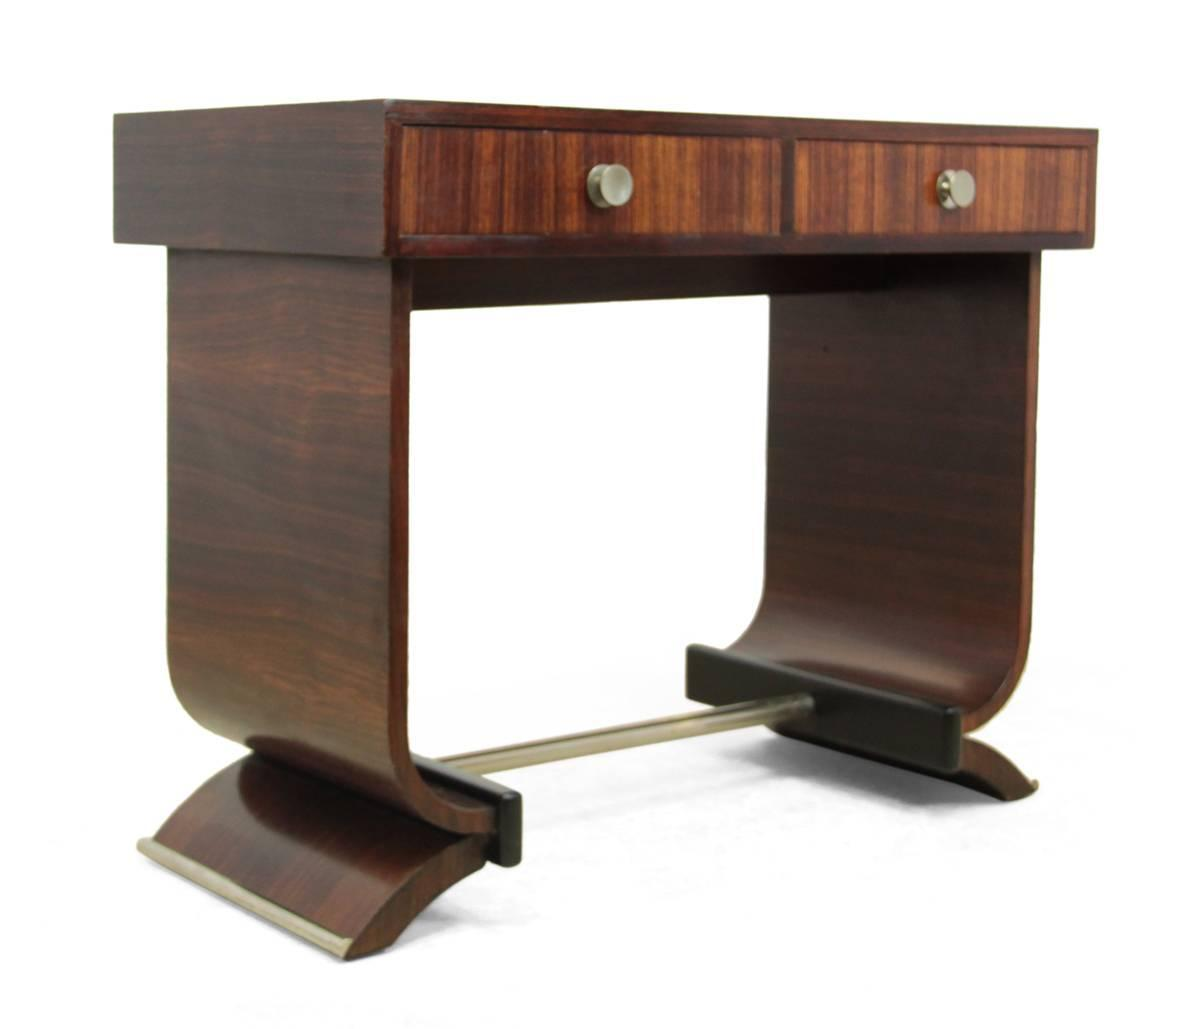 french art deco console table in rosewood circa 1920 at 1stdibs. Black Bedroom Furniture Sets. Home Design Ideas